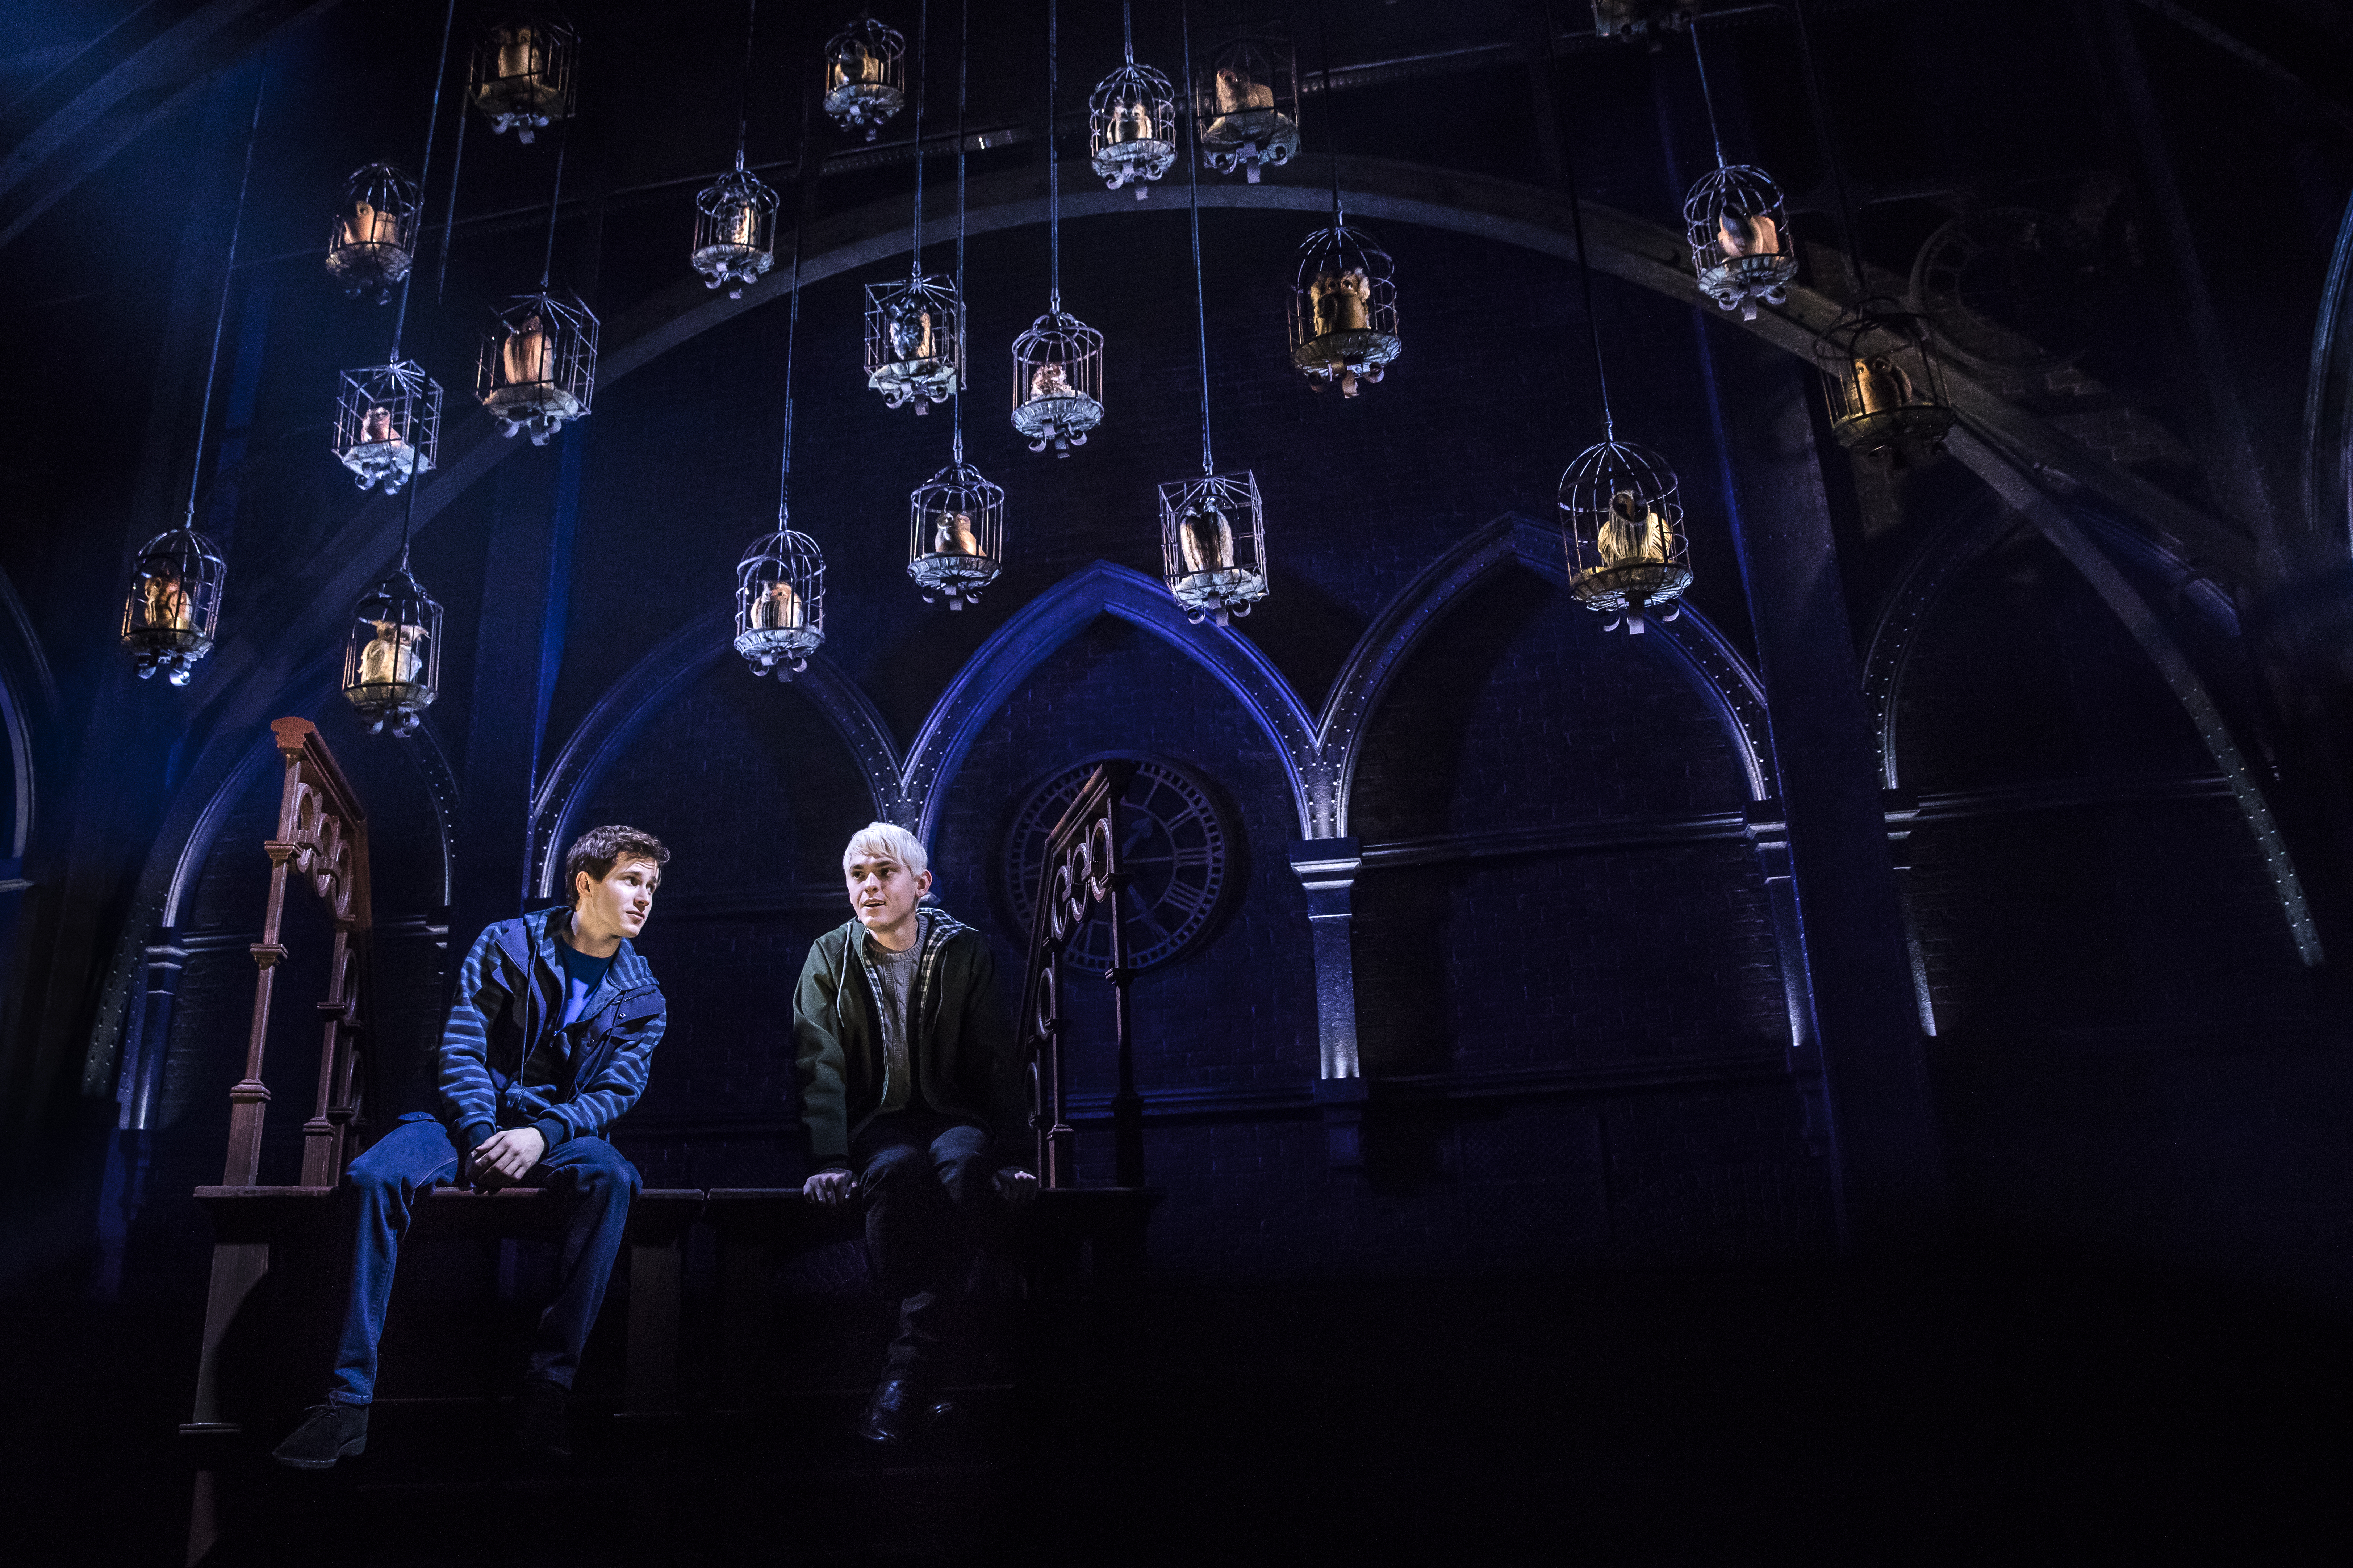 [News] HARRY POTTER AND THE CURSED CHILD Featured at San Diego Comic-Con